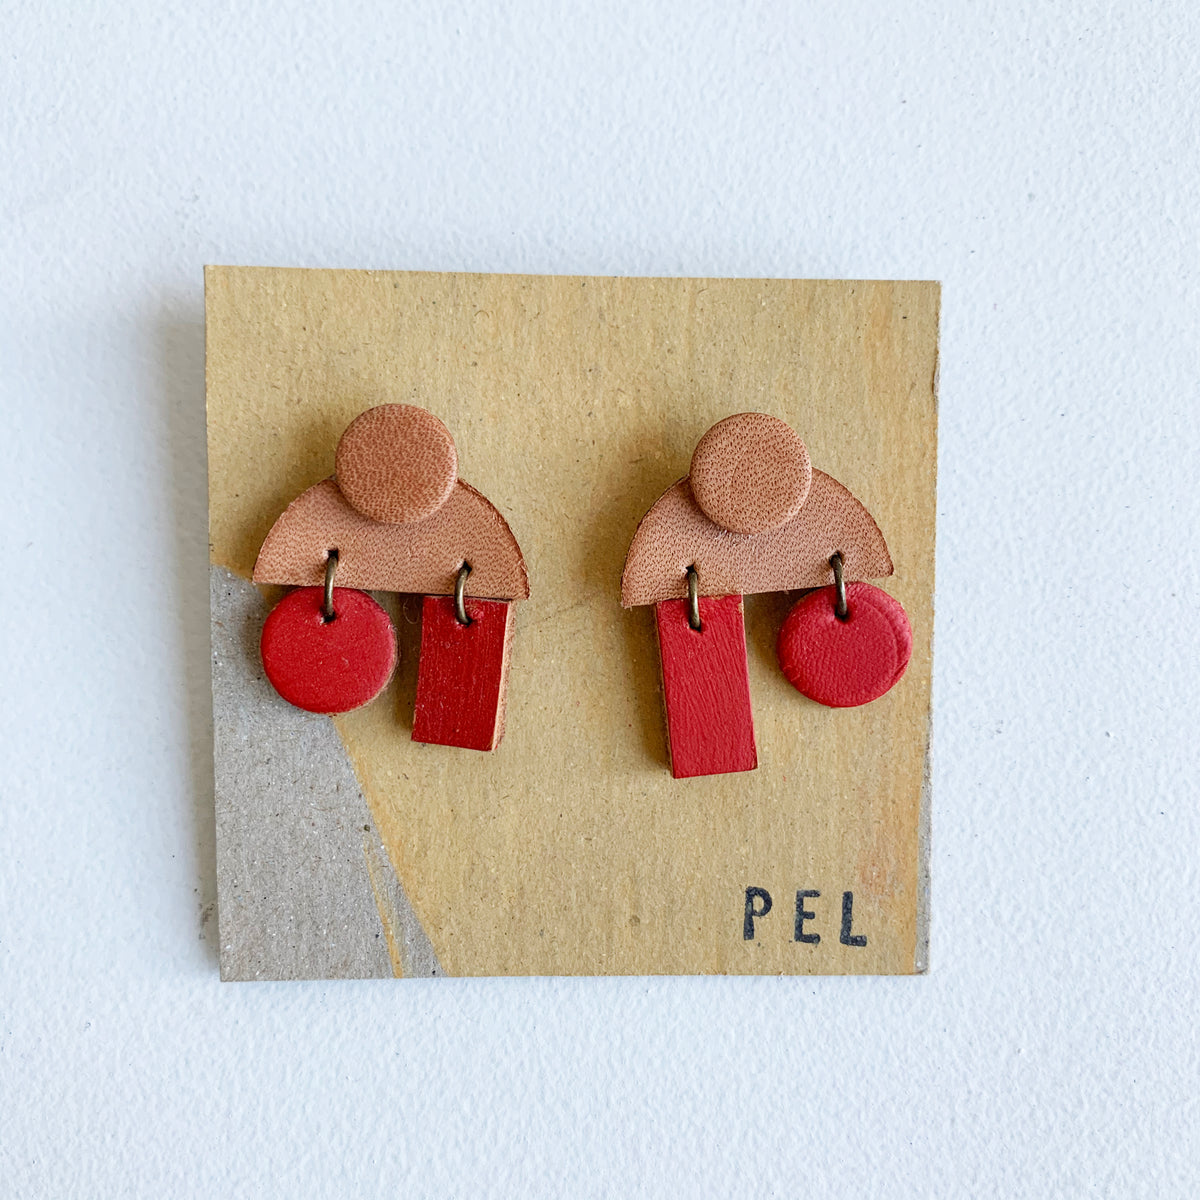 'PEL' Earrings: Red & Tan Semi-Circles